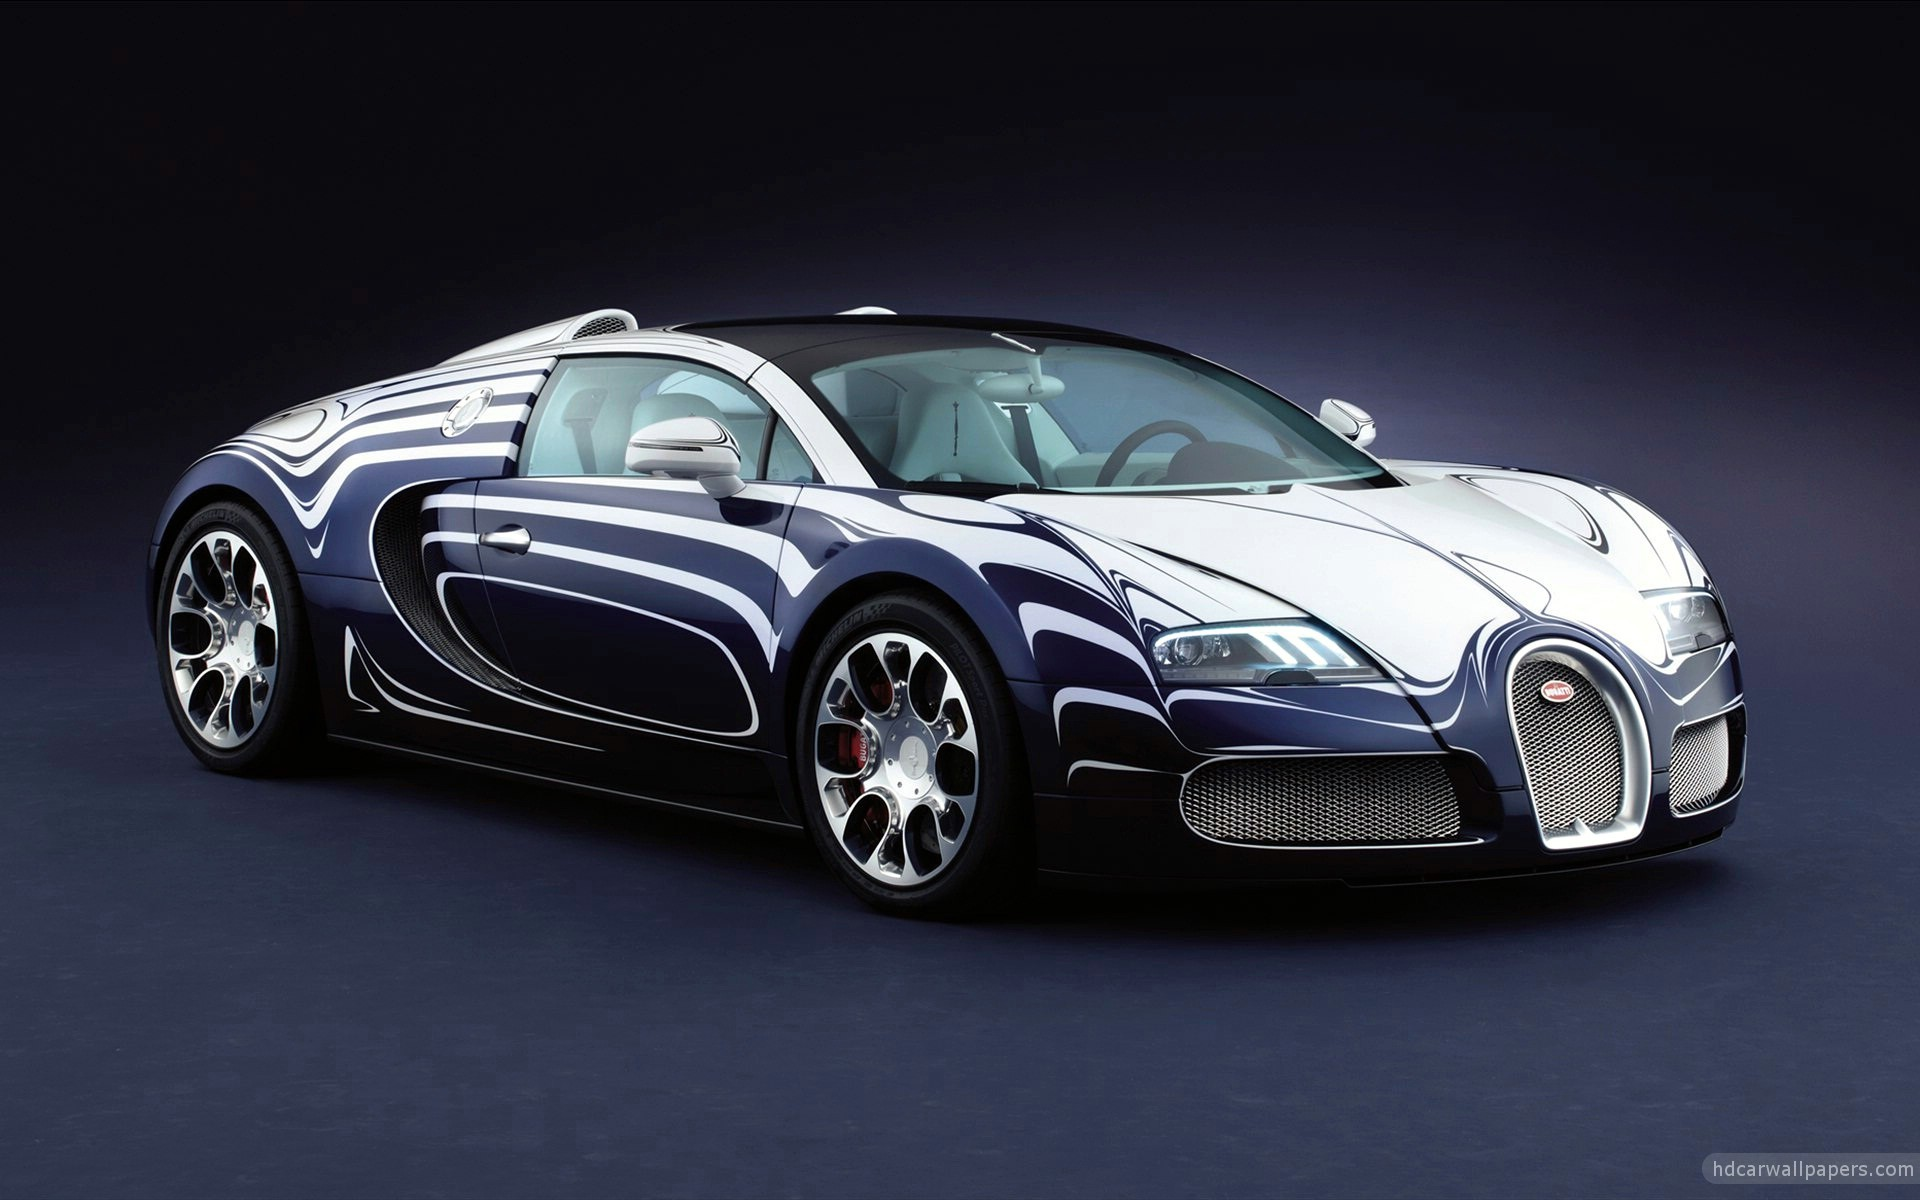 2011 bugatti veyron grand sport wallpaper hd car wallpapers. Cars Review. Best American Auto & Cars Review